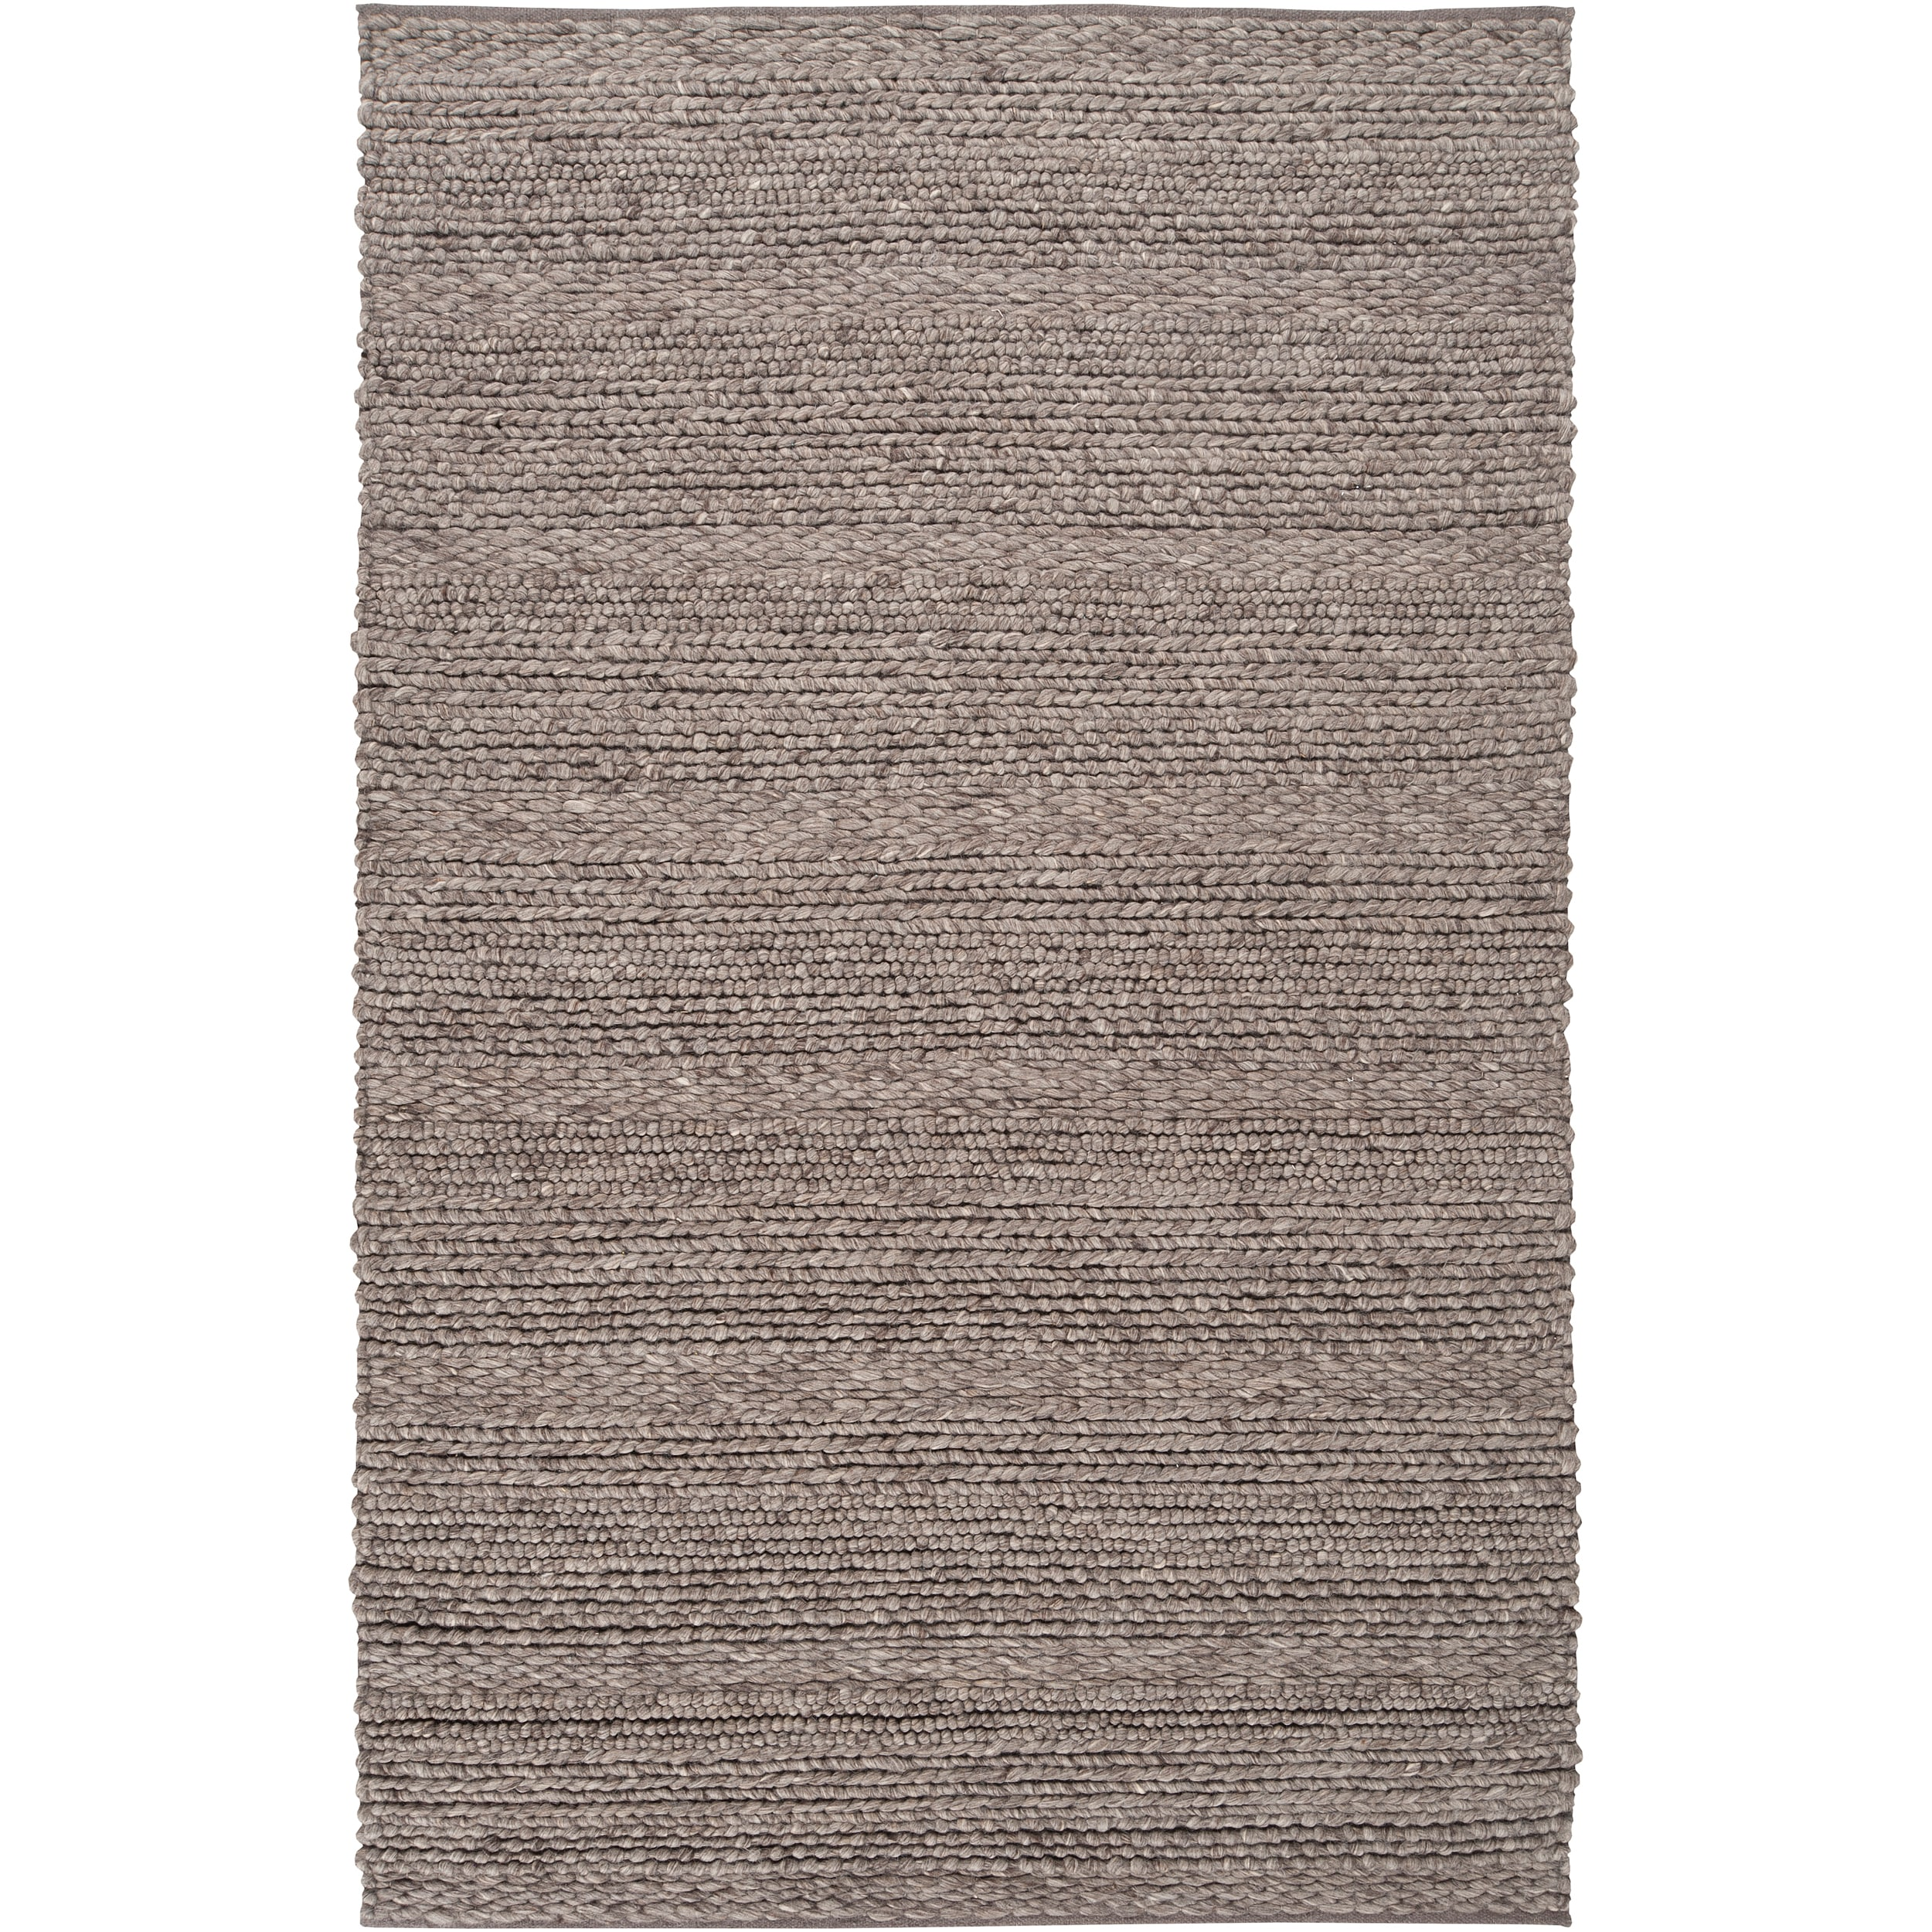 Hand-woven Casual Solid Grey Tame Wool Rug (8' x 10')